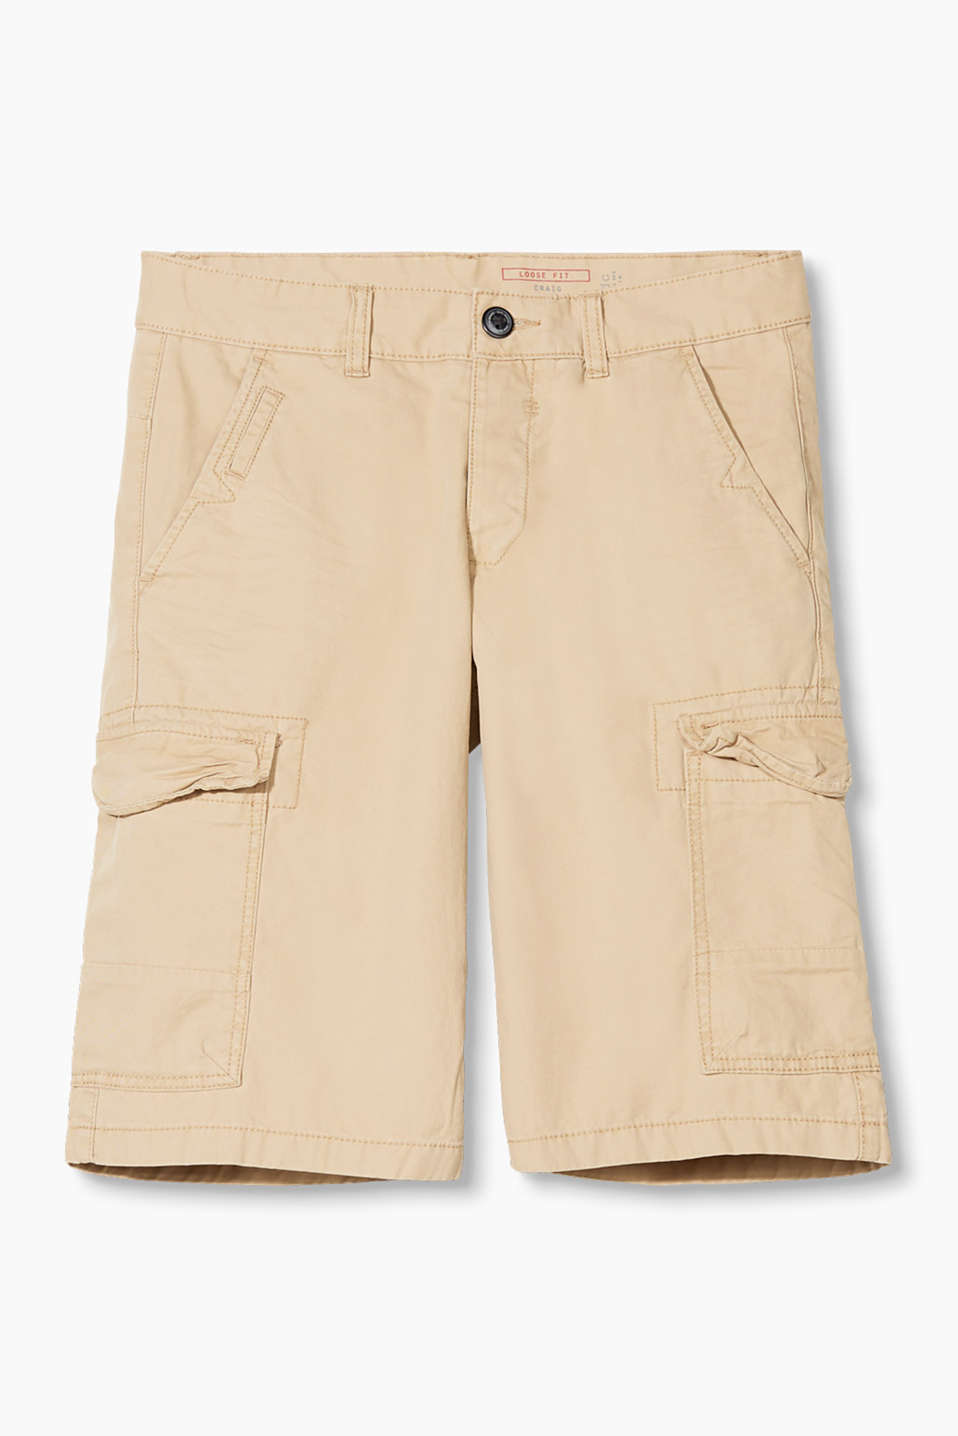 edc - Cargo bermudas, 100% cotton